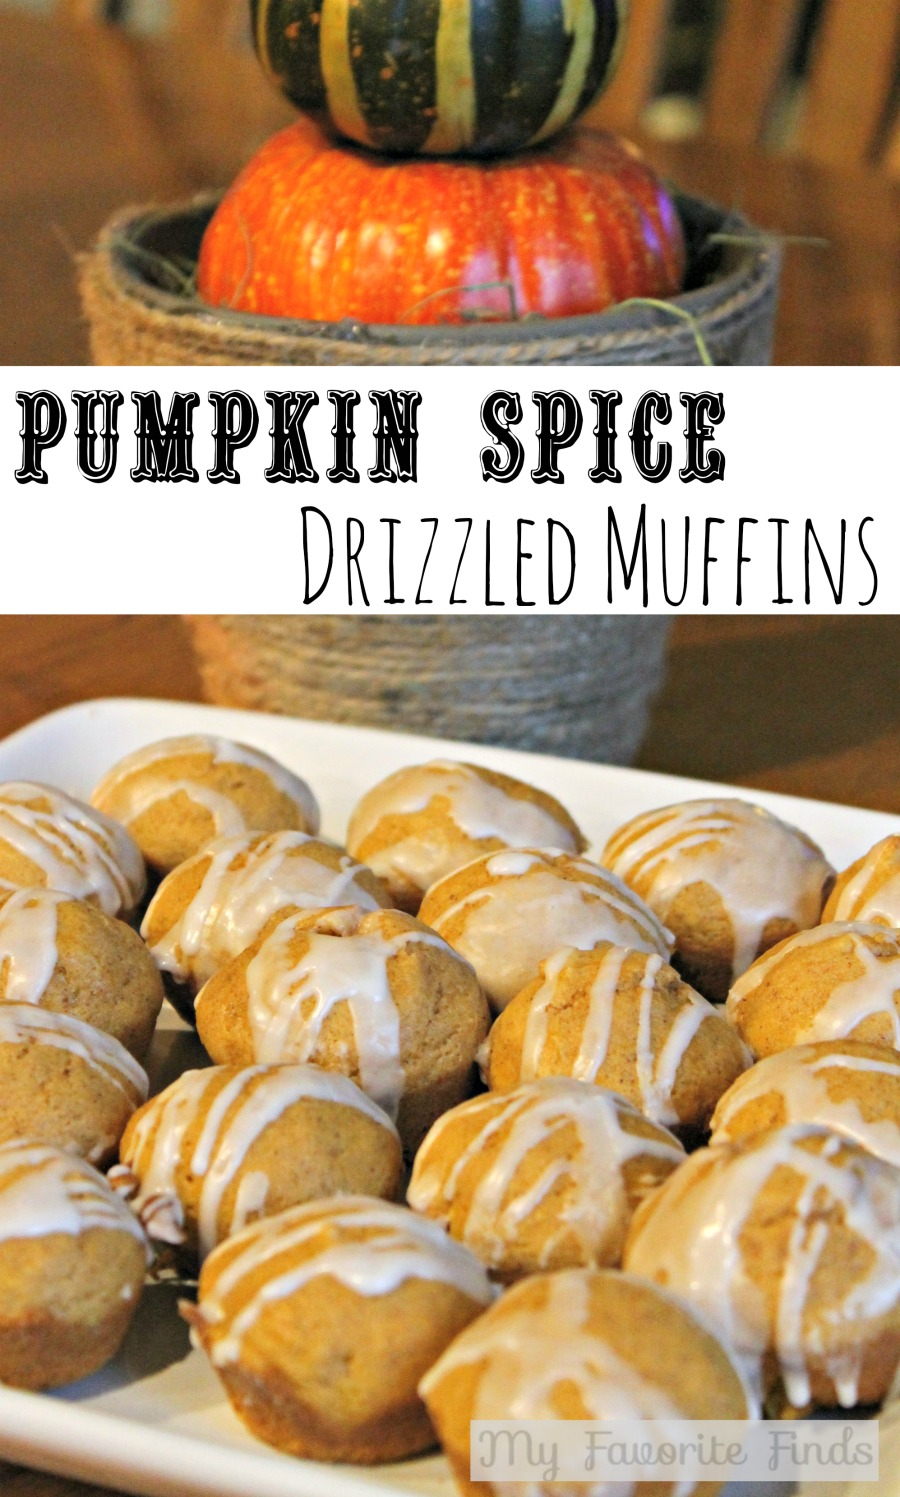 Pumpkin Spice Drizzled Muffins #pumpkin #recipes #muffins